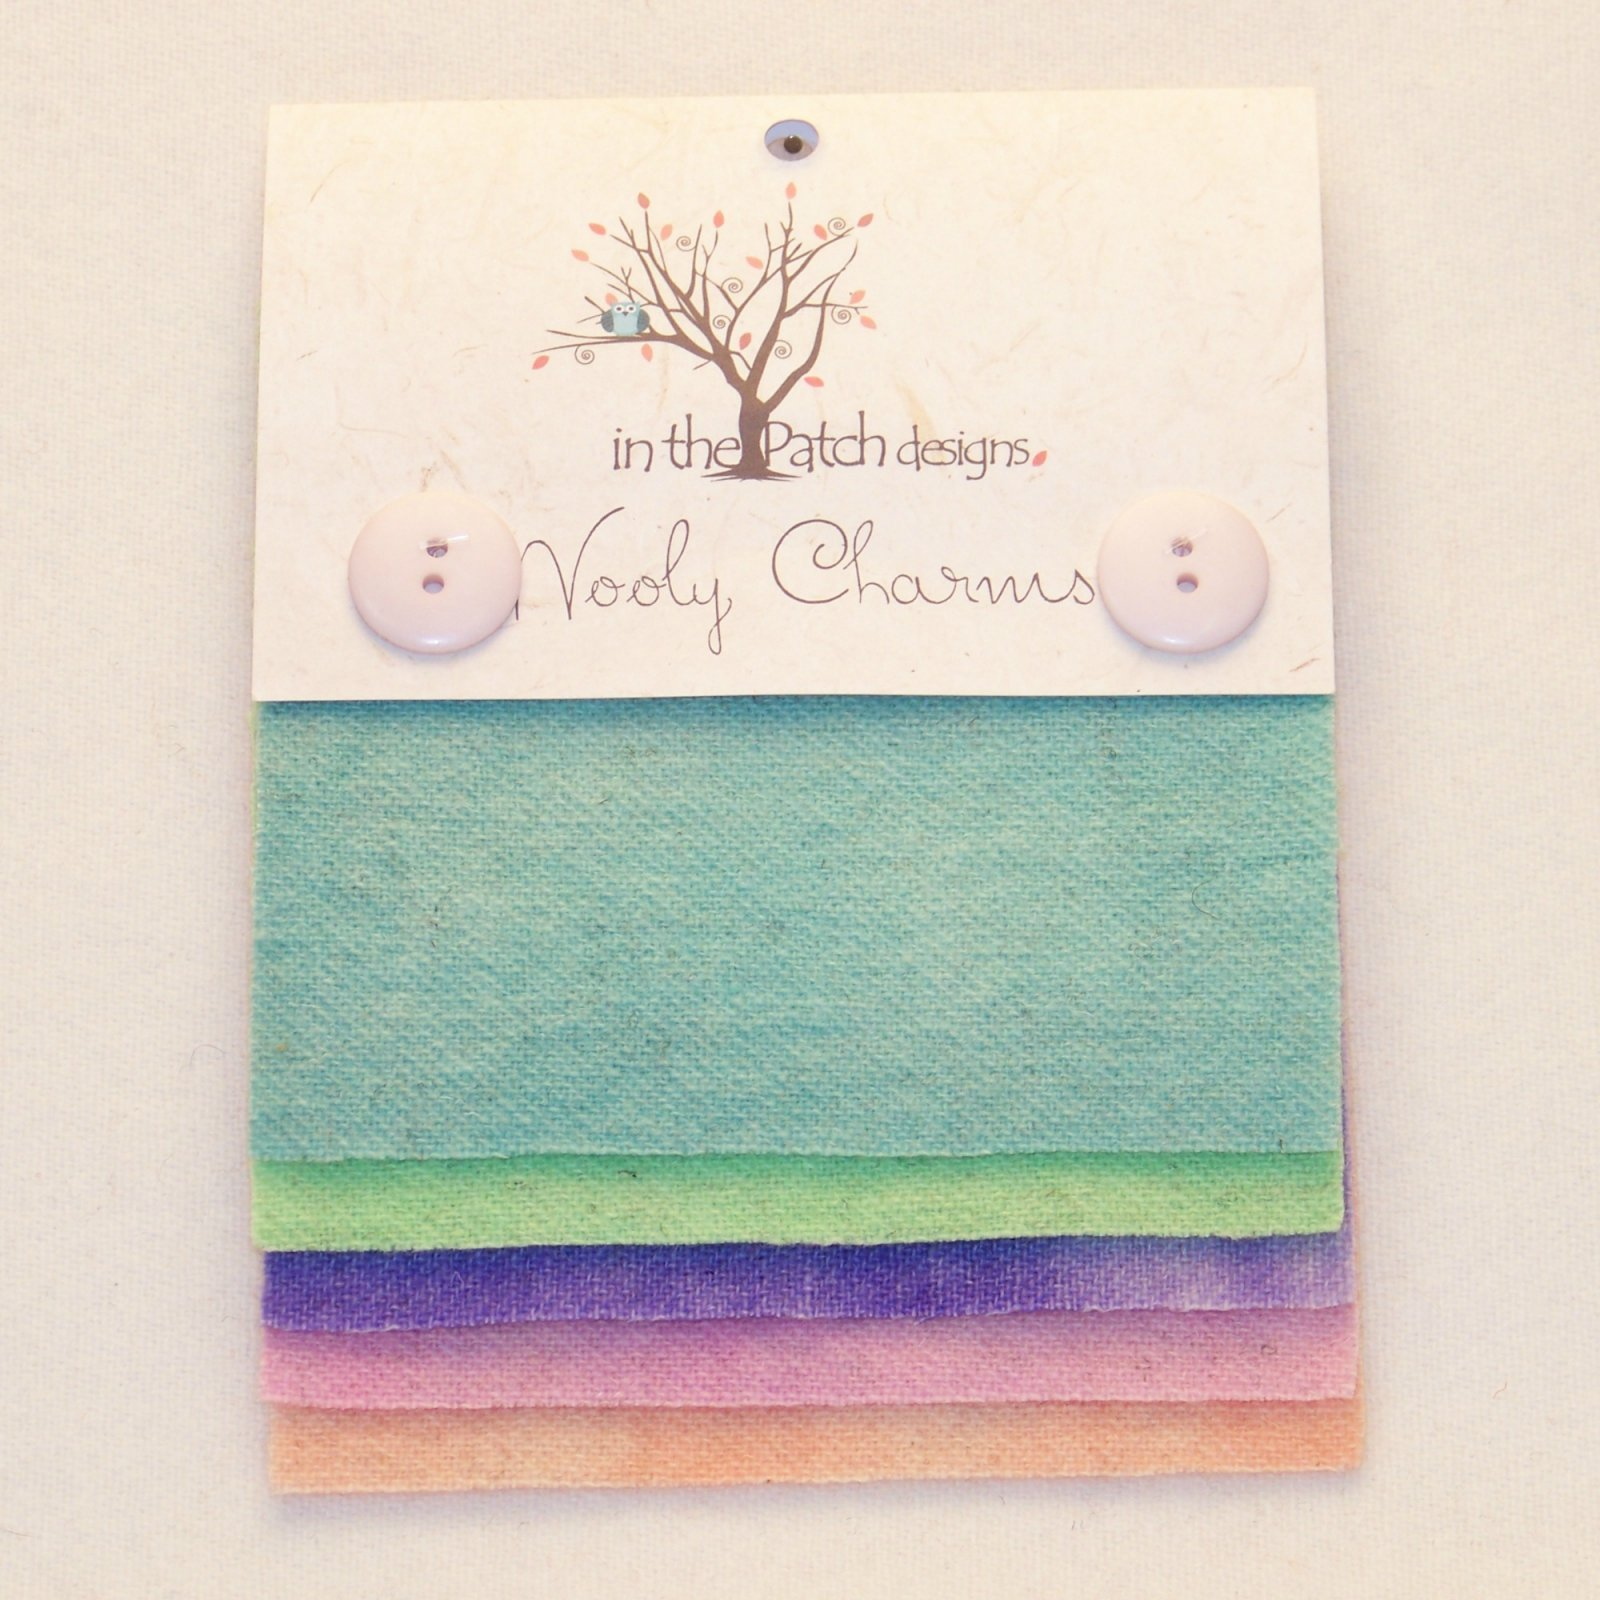 Wooly Charms 5-Pack in Rainbow Sherbet (Wool Felt Fabric) by Phyllis Meiring for In the Patch Designs #itpwc6060c